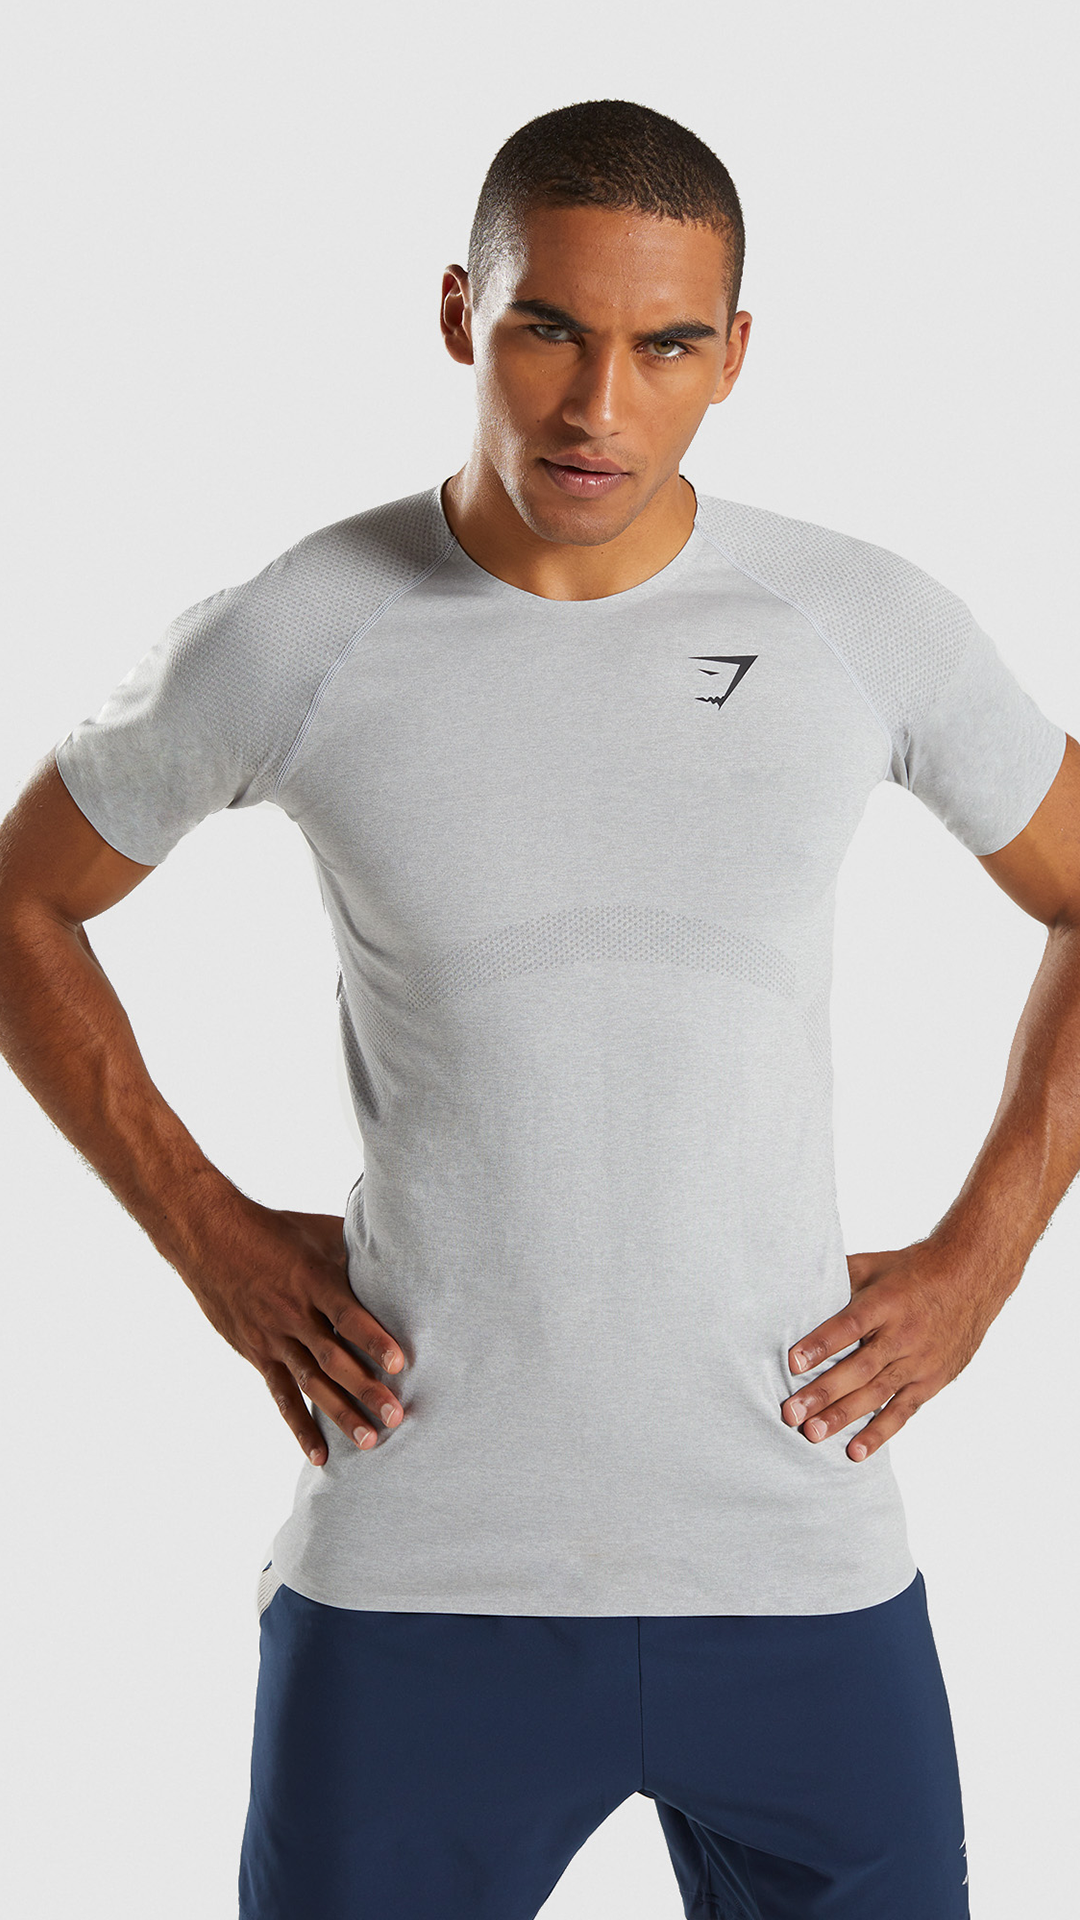 5a6b1b3e73fd2 Shadow Seamless Short Sleeve T-Shirt, Light Grey. The Shadow Seamless Short  Sleeve T-Shirt promotes a powerful silhouette and immaculate performance.